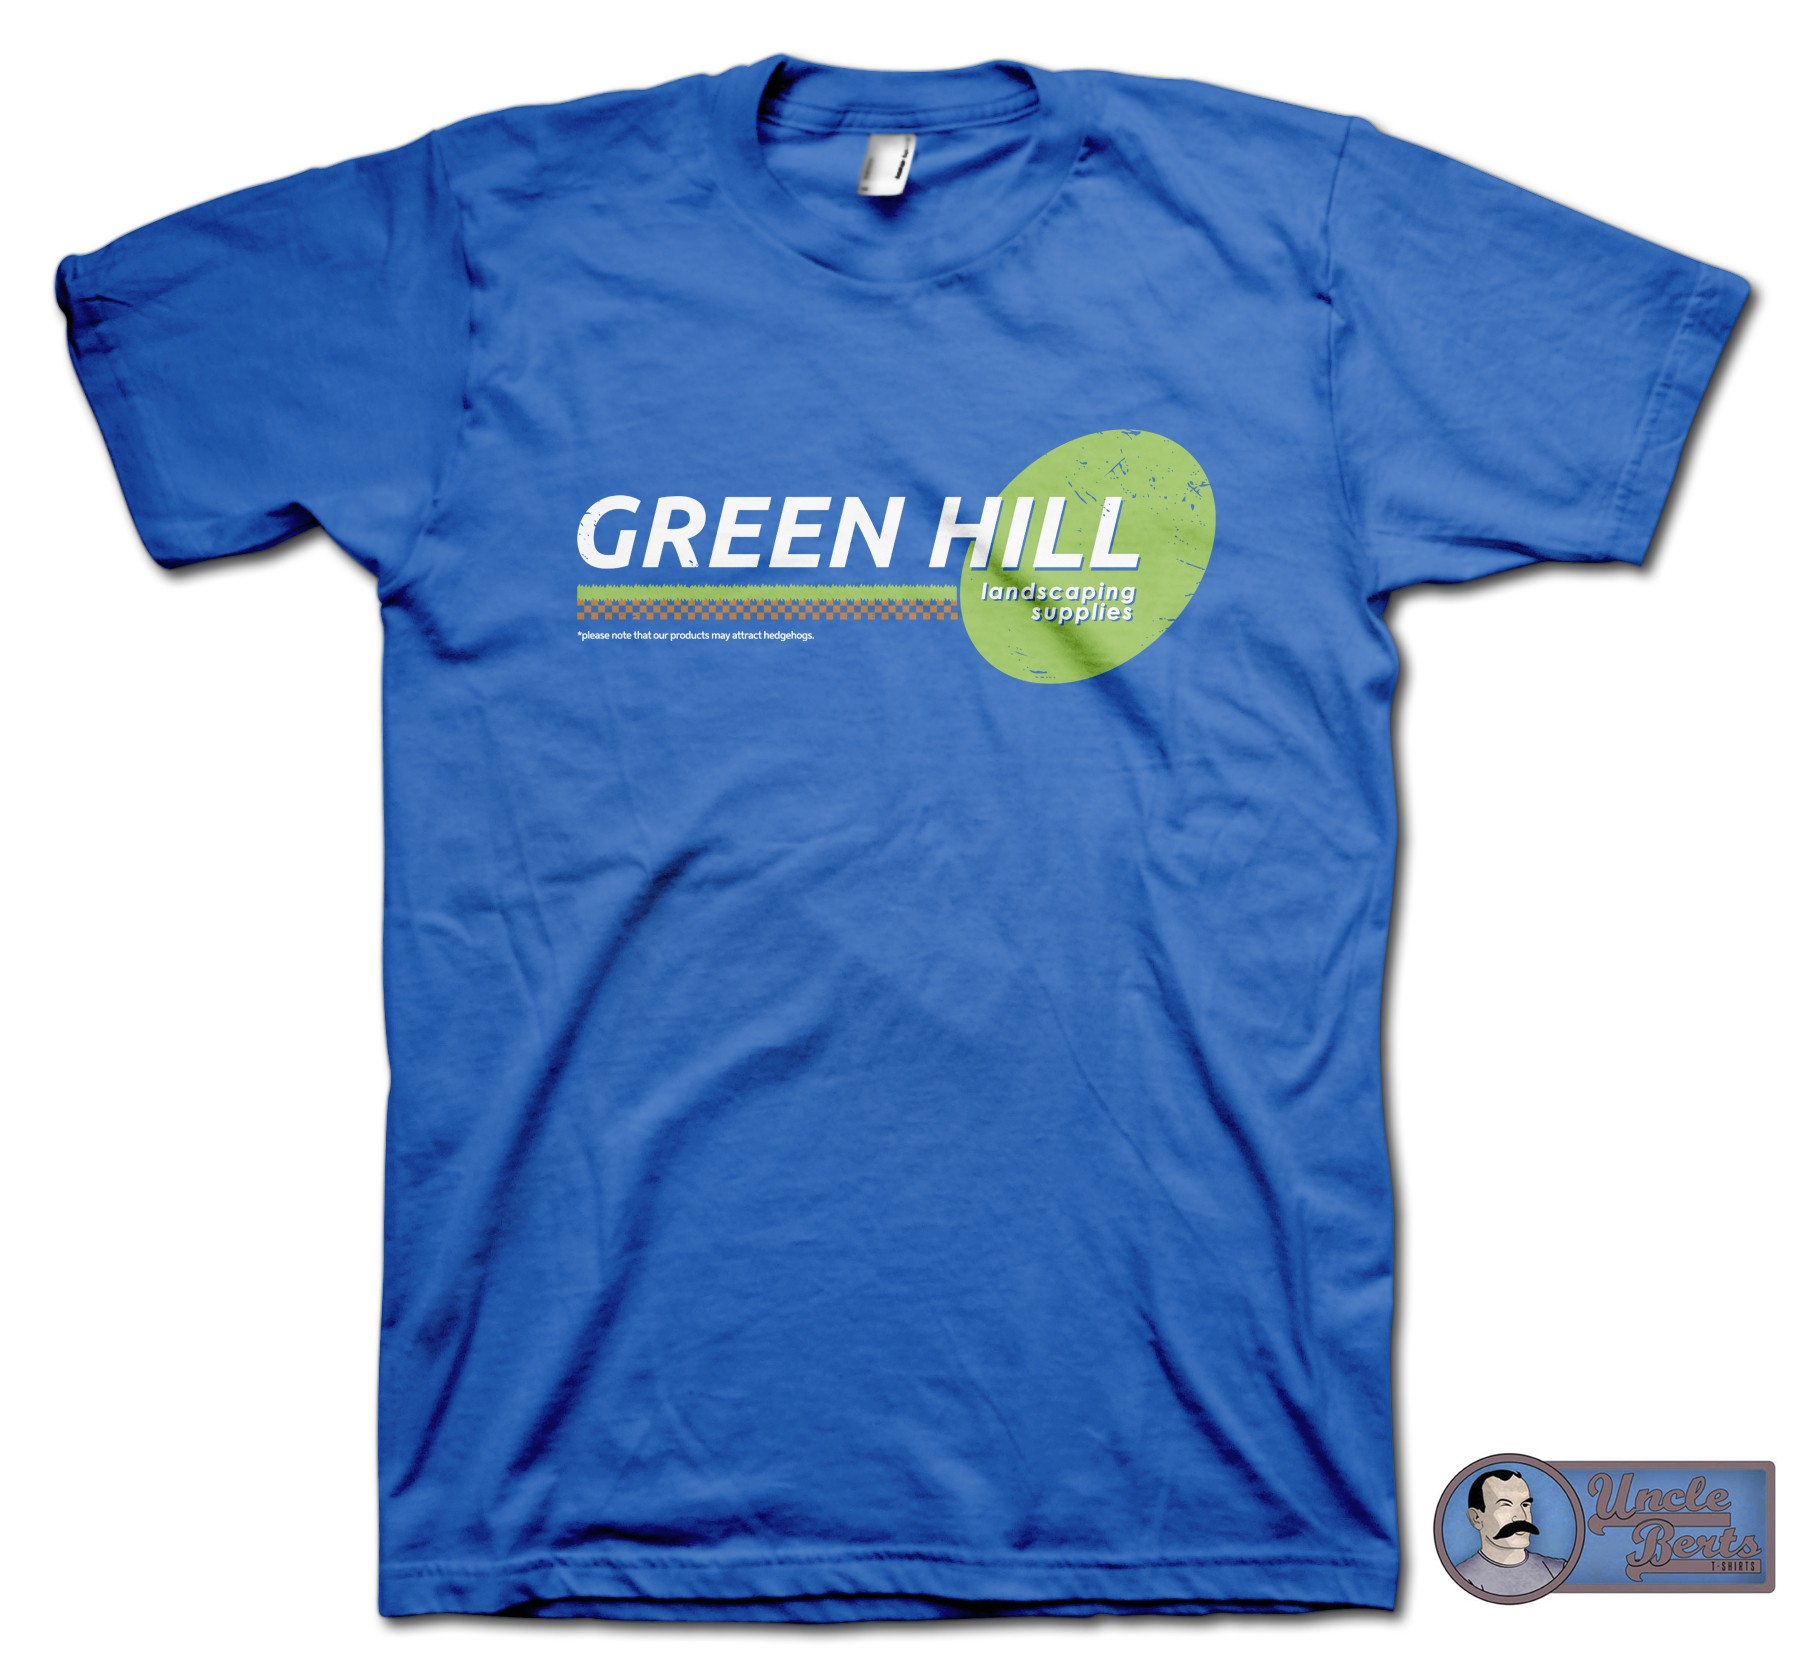 Green Hill T-Shirt - inspired by the Sonic series